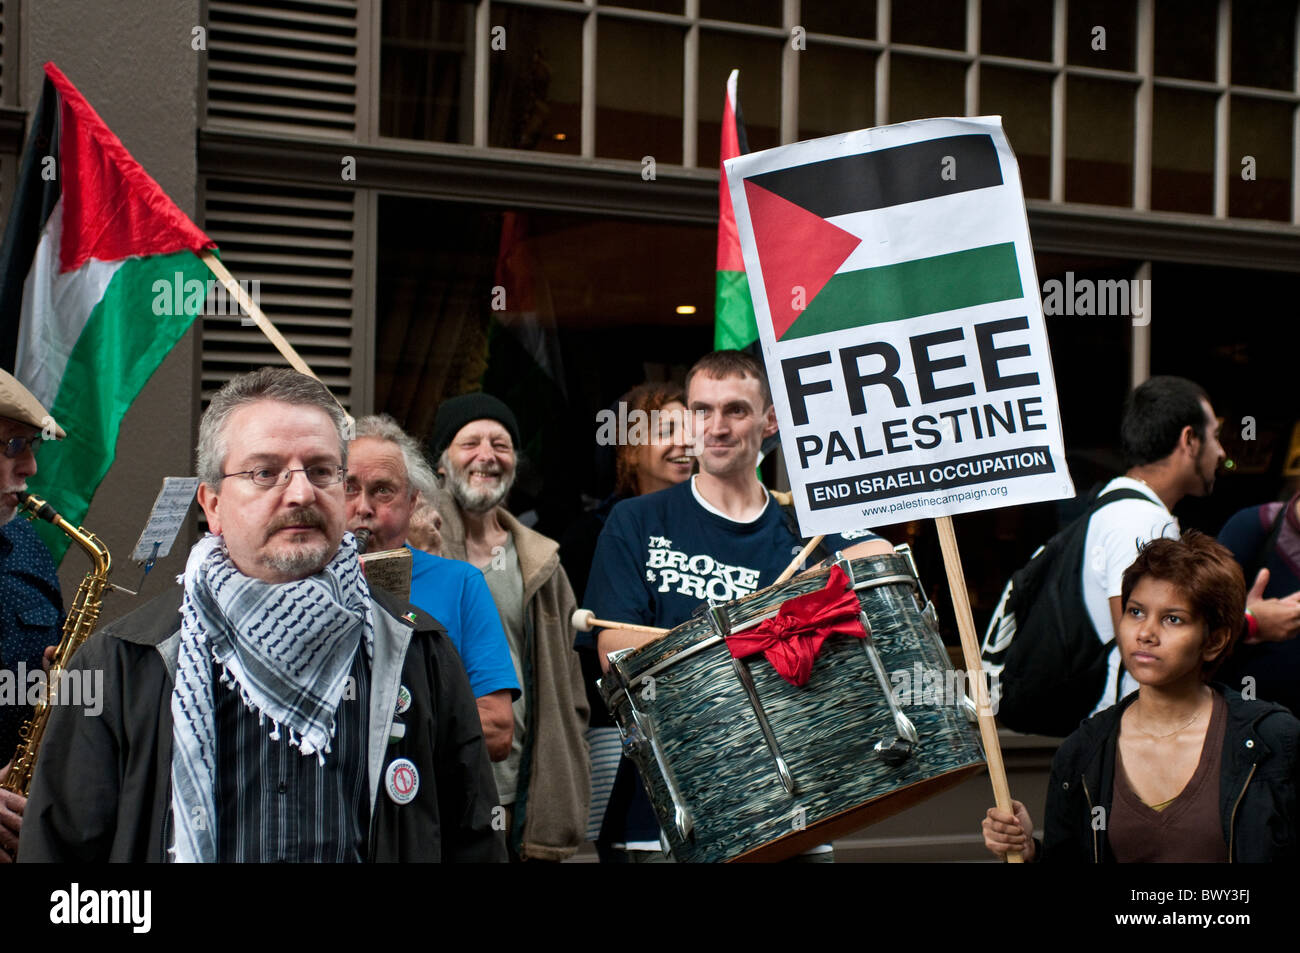 Demonstration for a Free Palestine outside Ahava shop in Covent Garden, London, UK - Stock Image